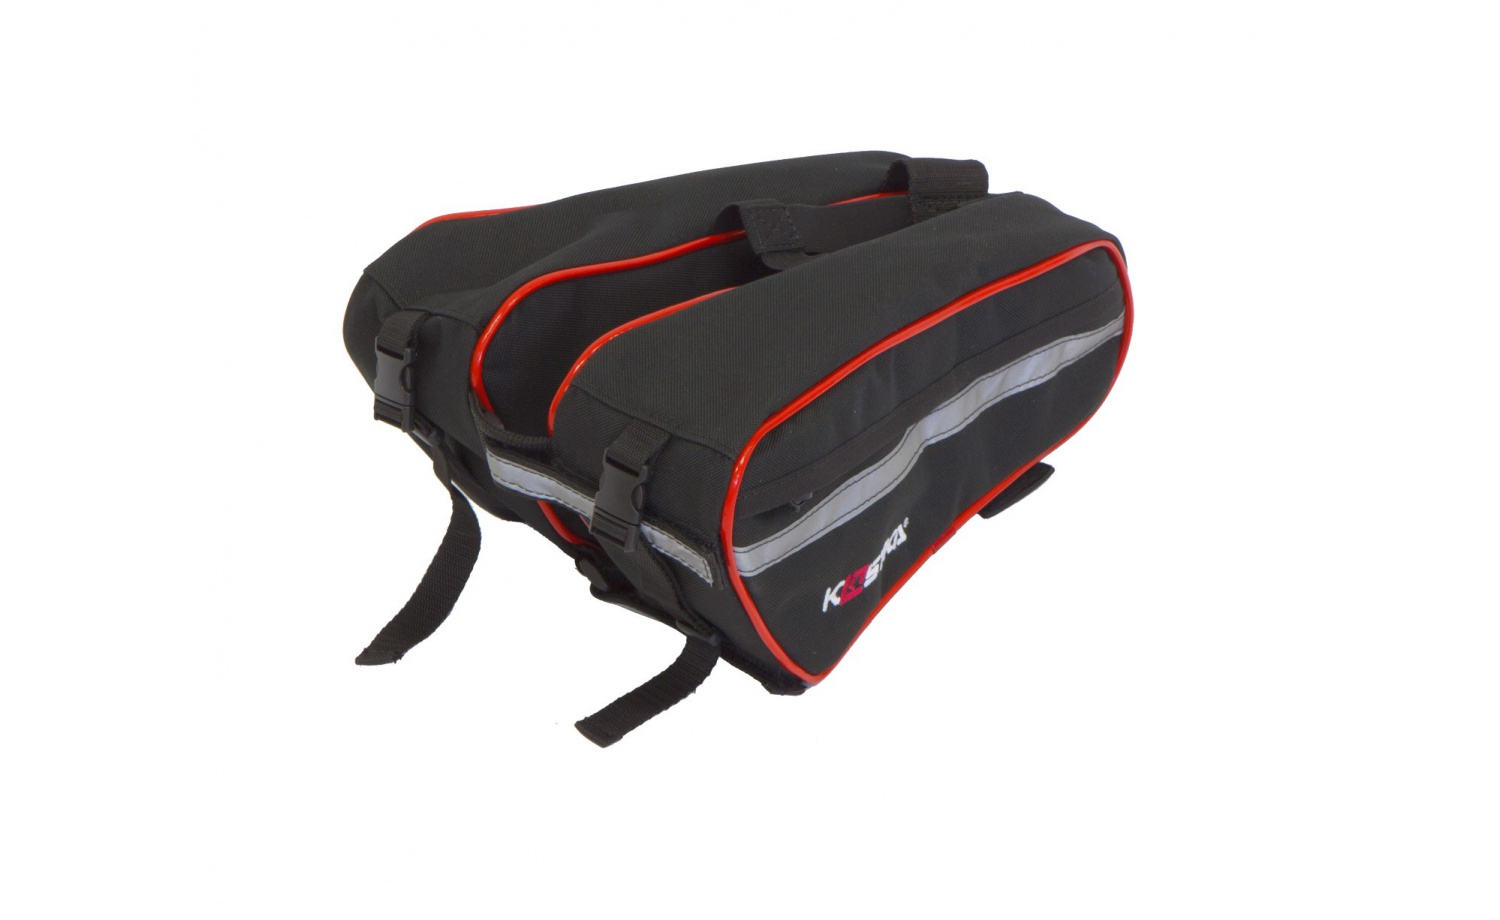 KOSTKA TWIN carrying bag